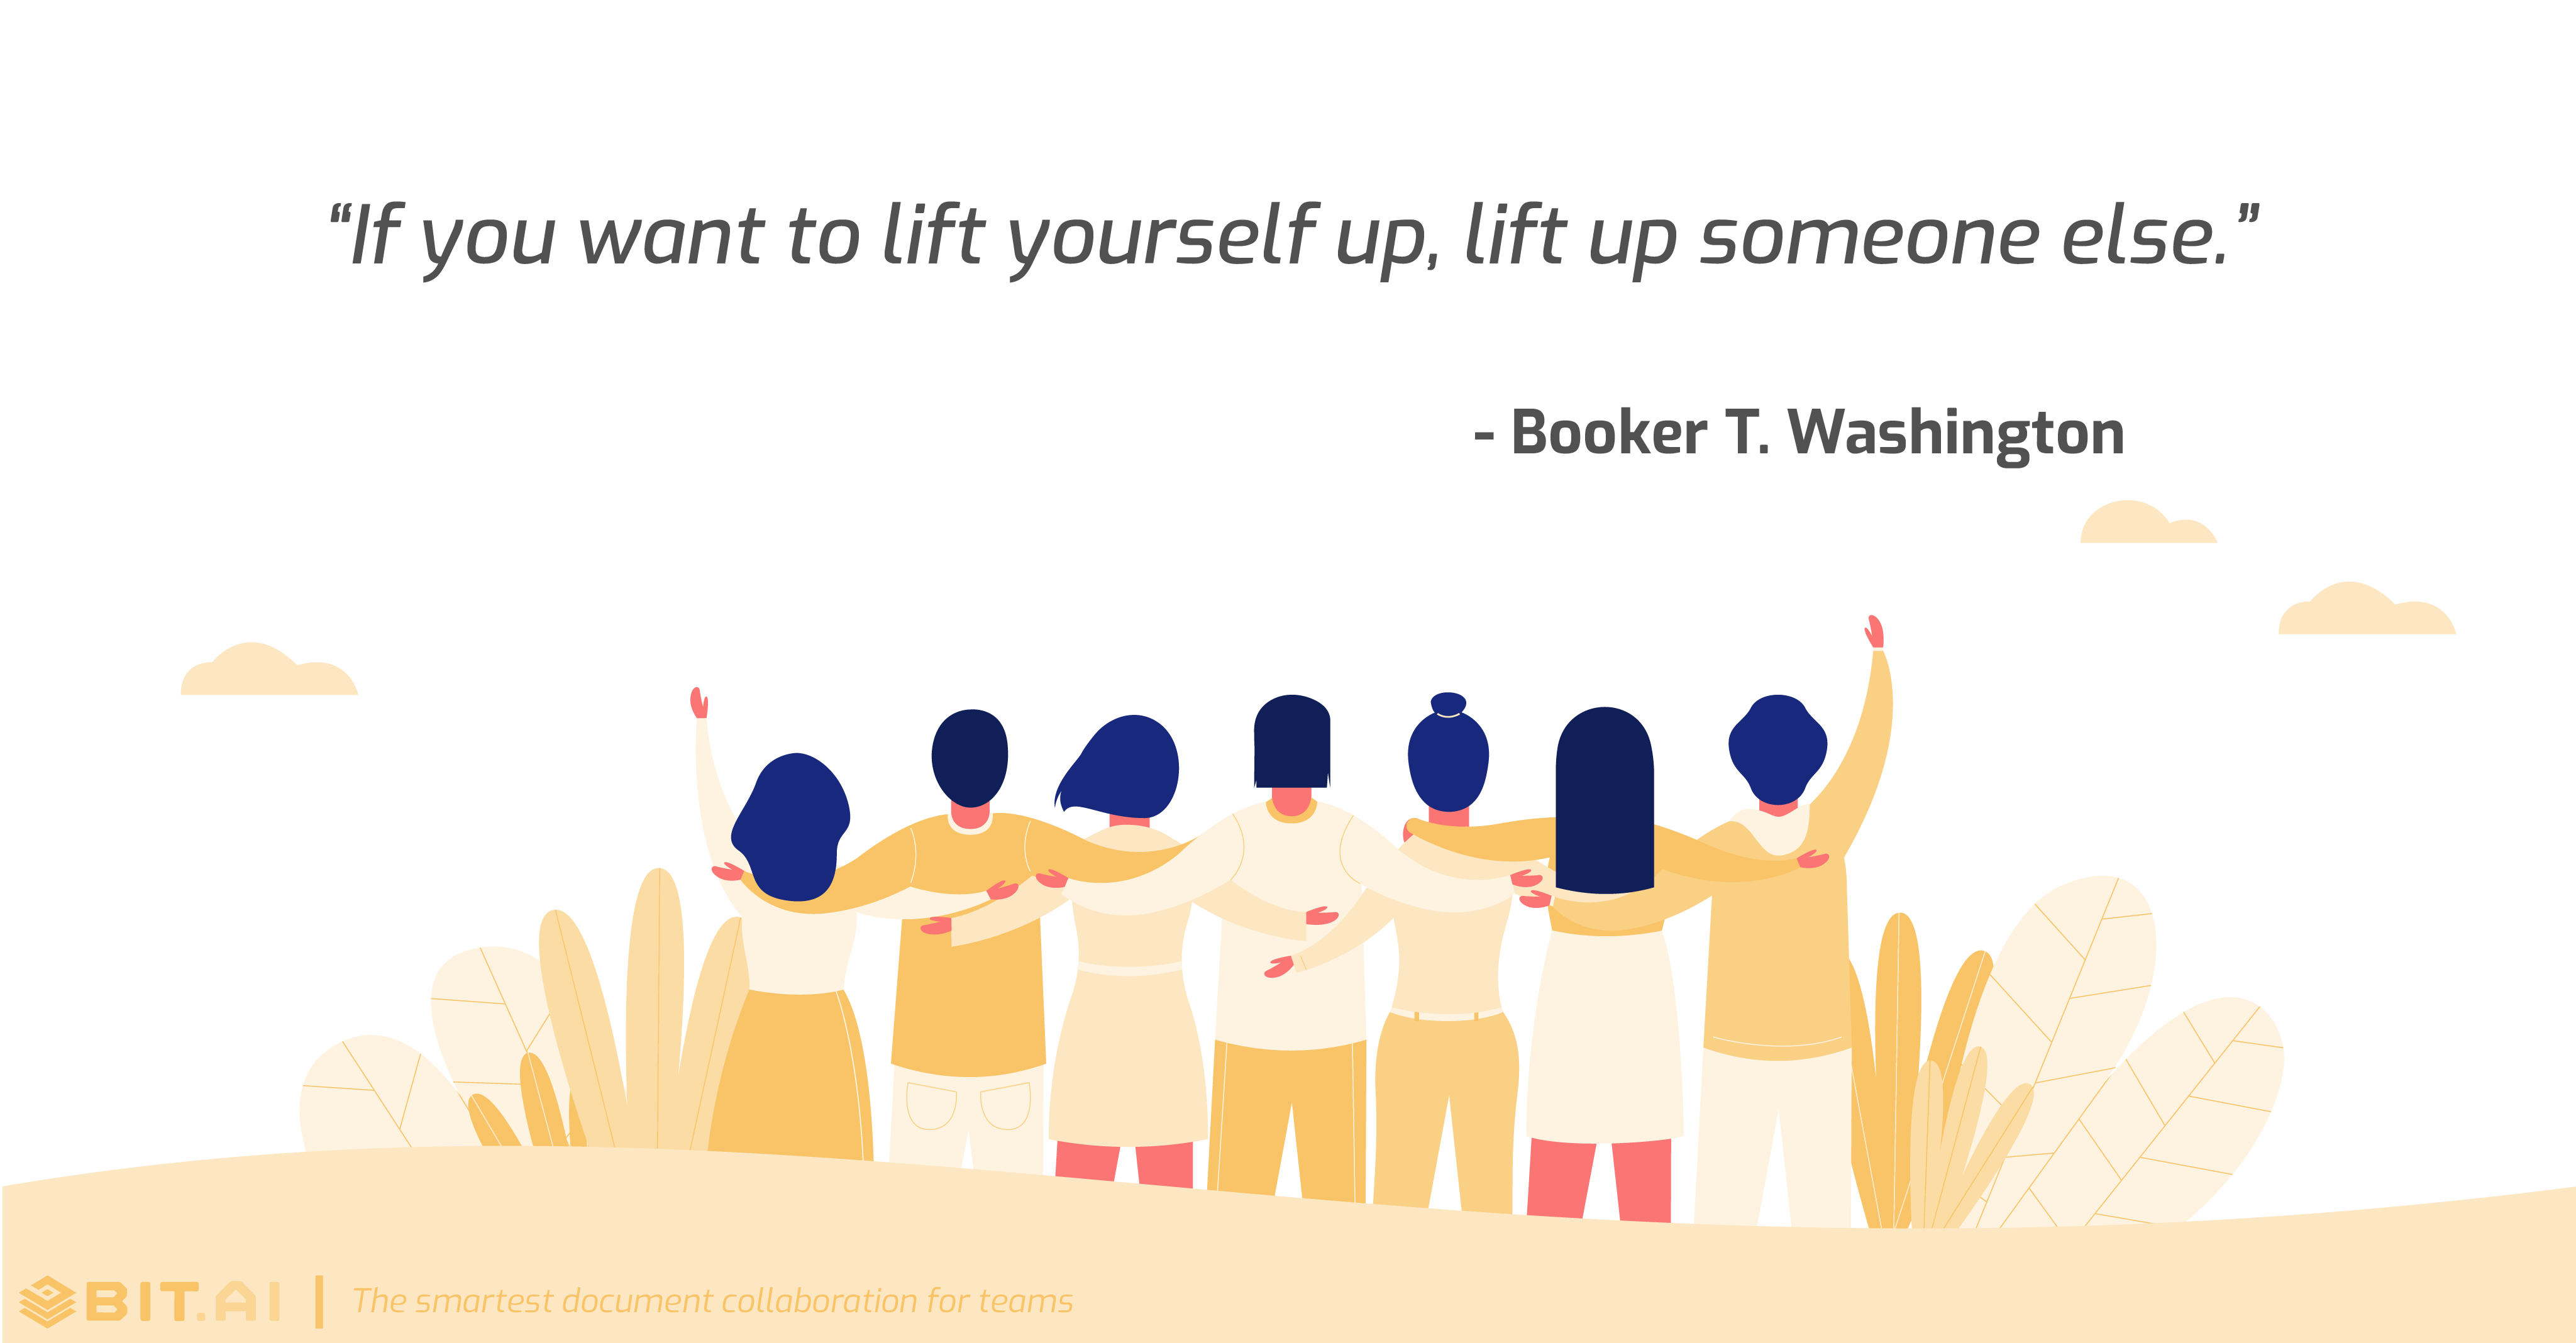 Teamwork collaboration quote: If you want to lift yourself up, lift up someone else – Booker T. Washington